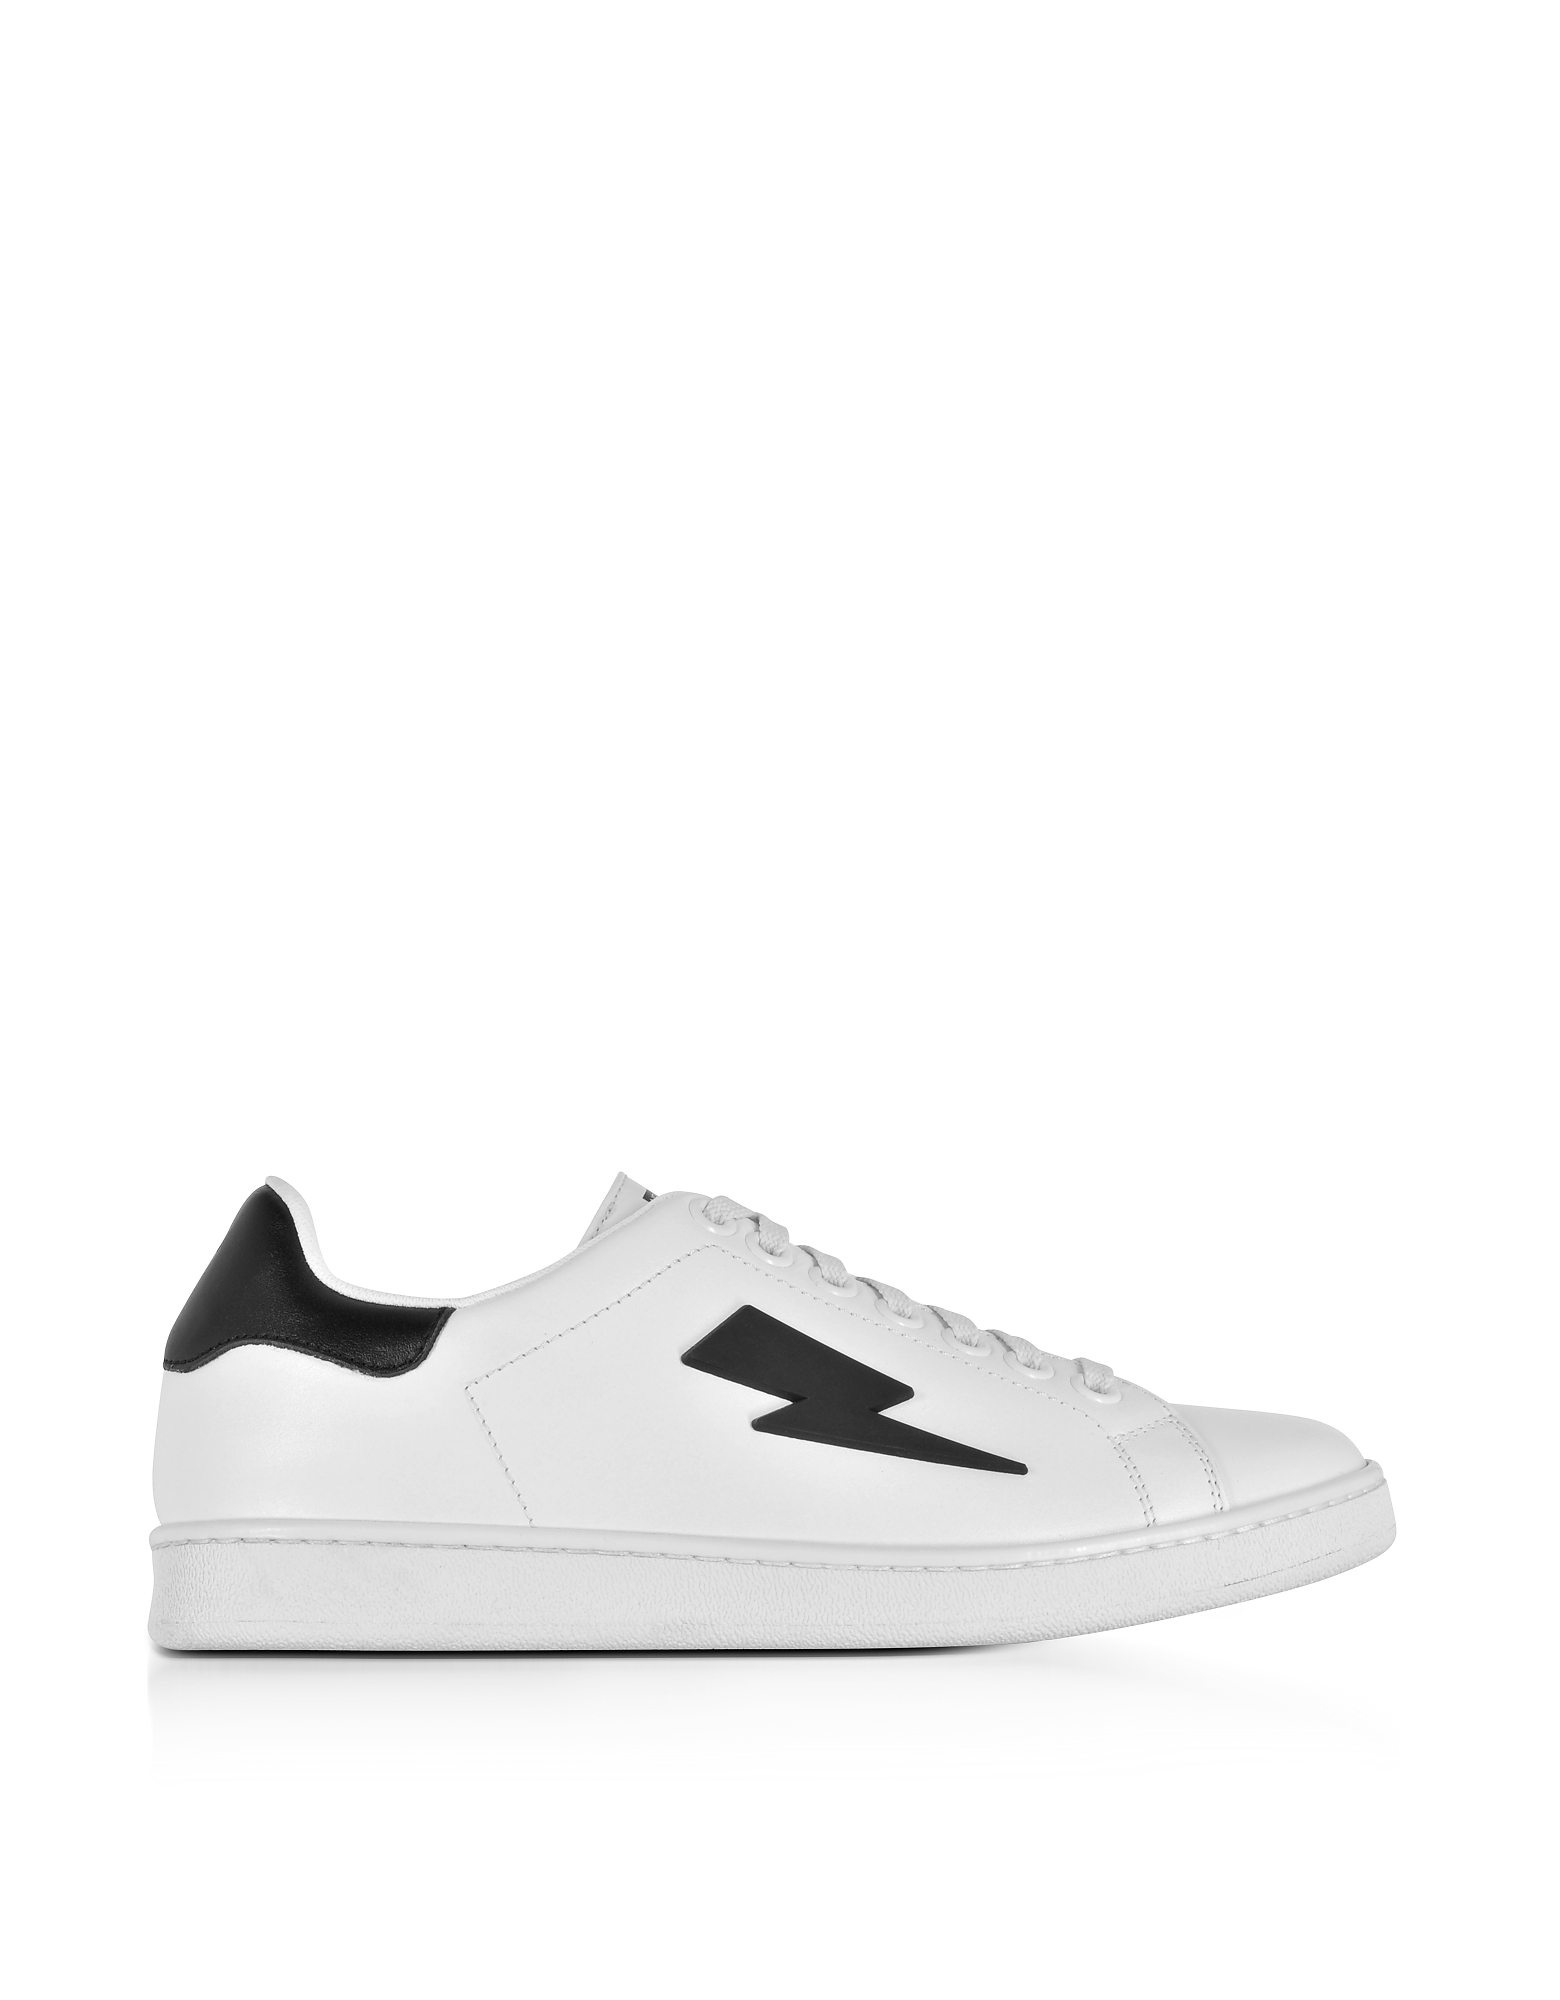 Neil Barrett Shoes, White and Black Leather Thunderbolt Tennis Sneakers